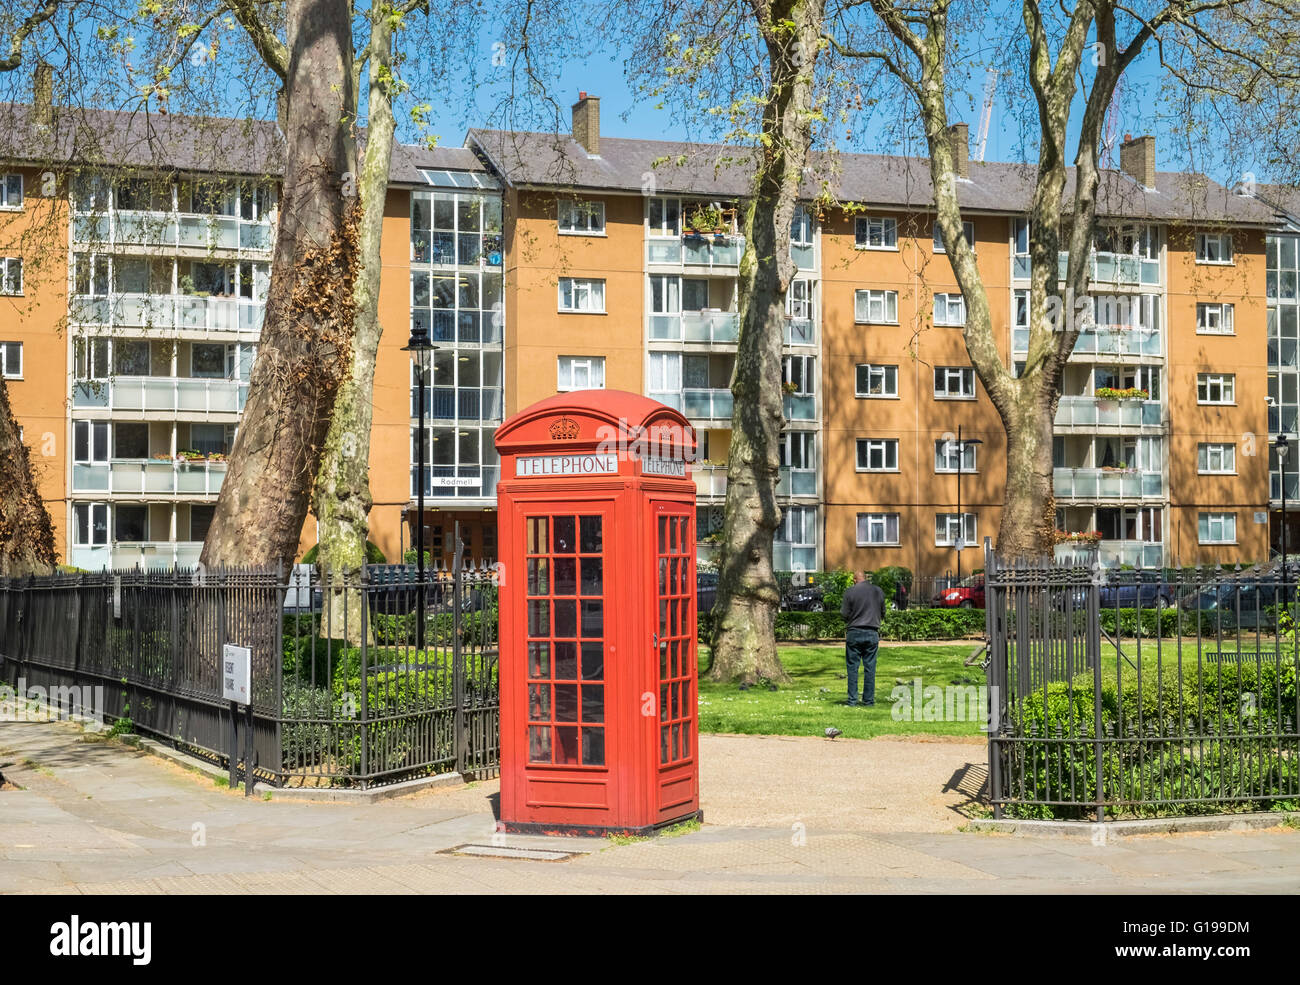 Traditional UK red telephone box located near block of flats in central London. - Stock Image